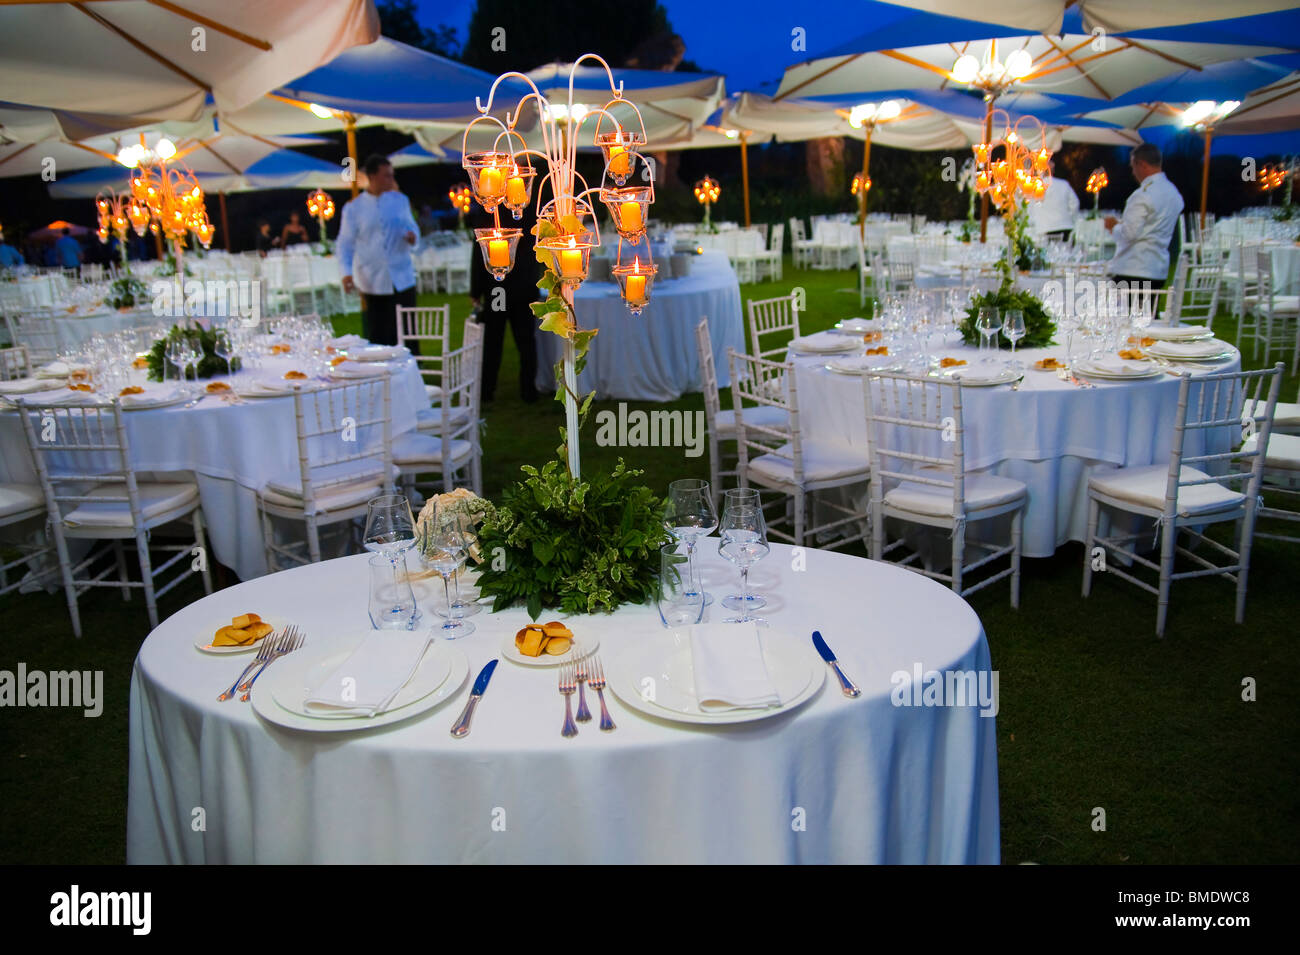 Outdoor wedding dinner table place setting at night & Outdoor wedding dinner table place setting at night Stock Photo ...